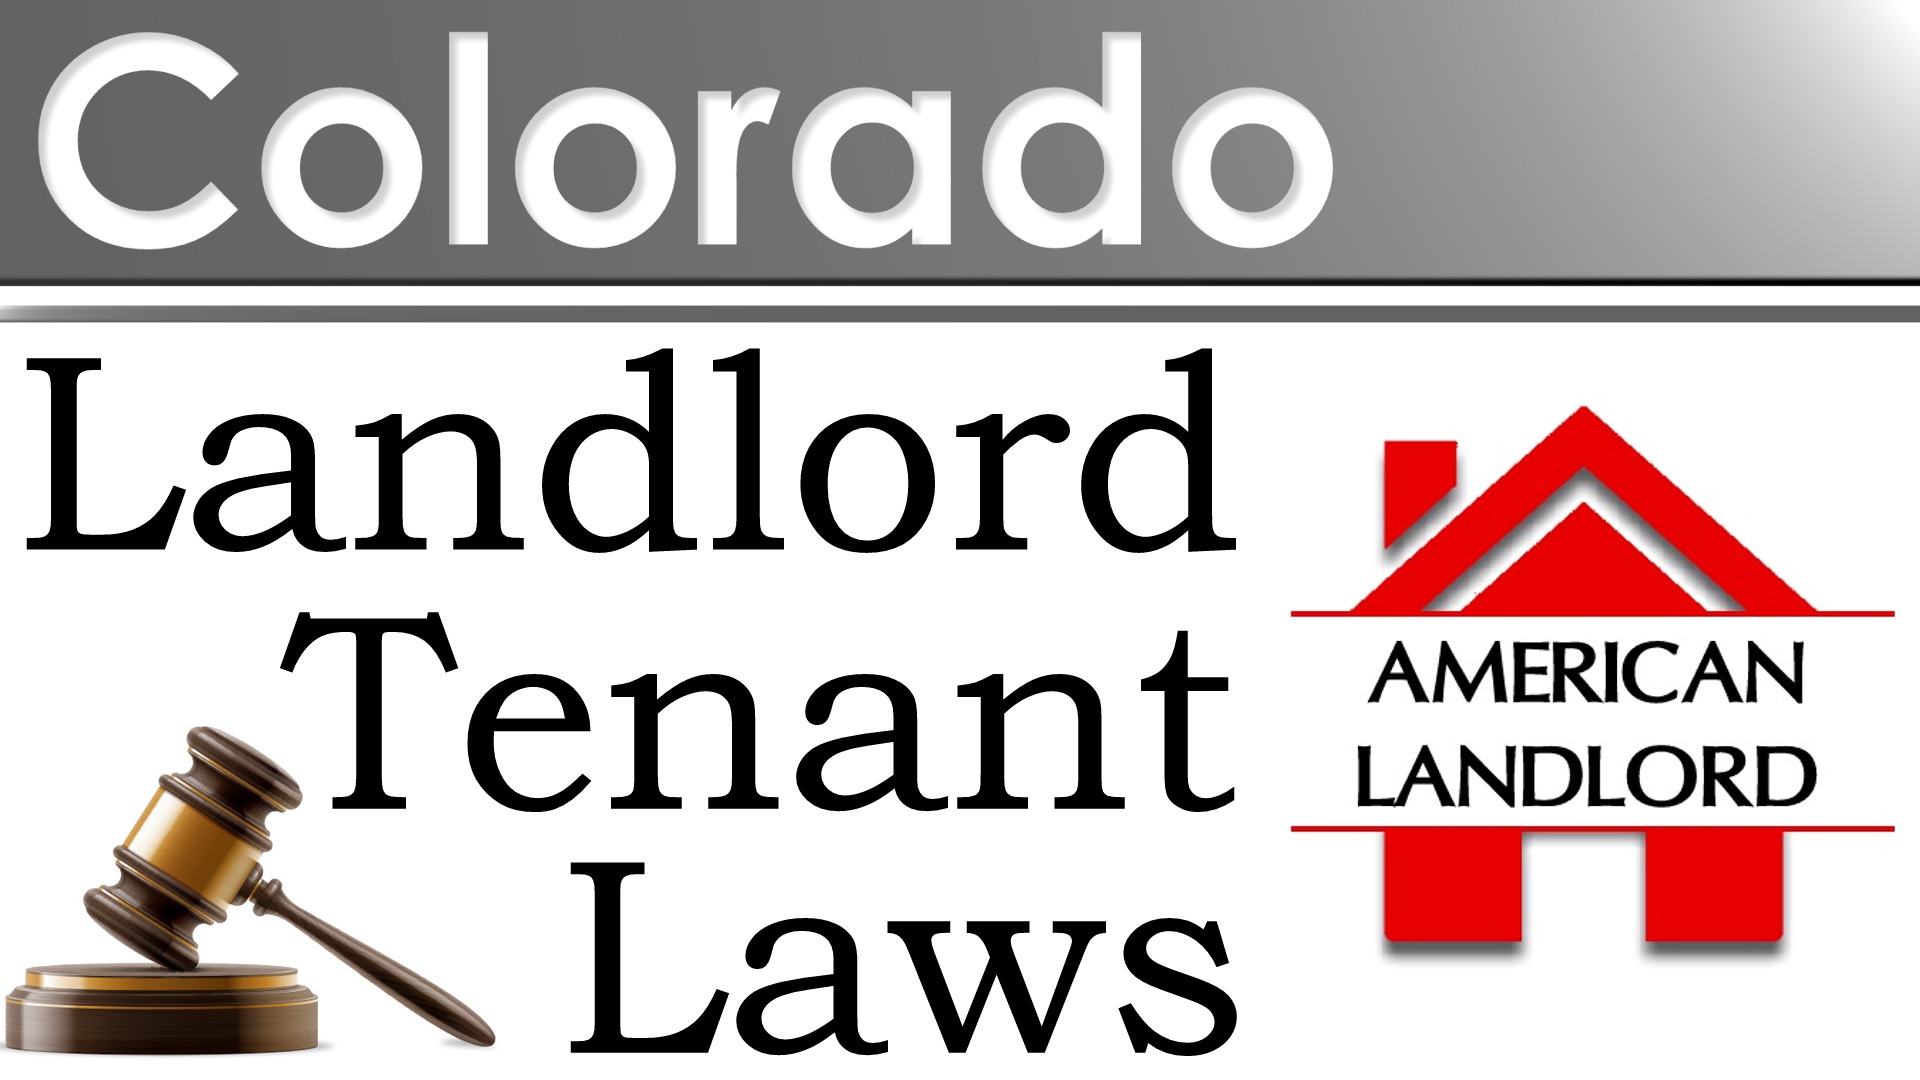 Colorado Landlord Tenant Law